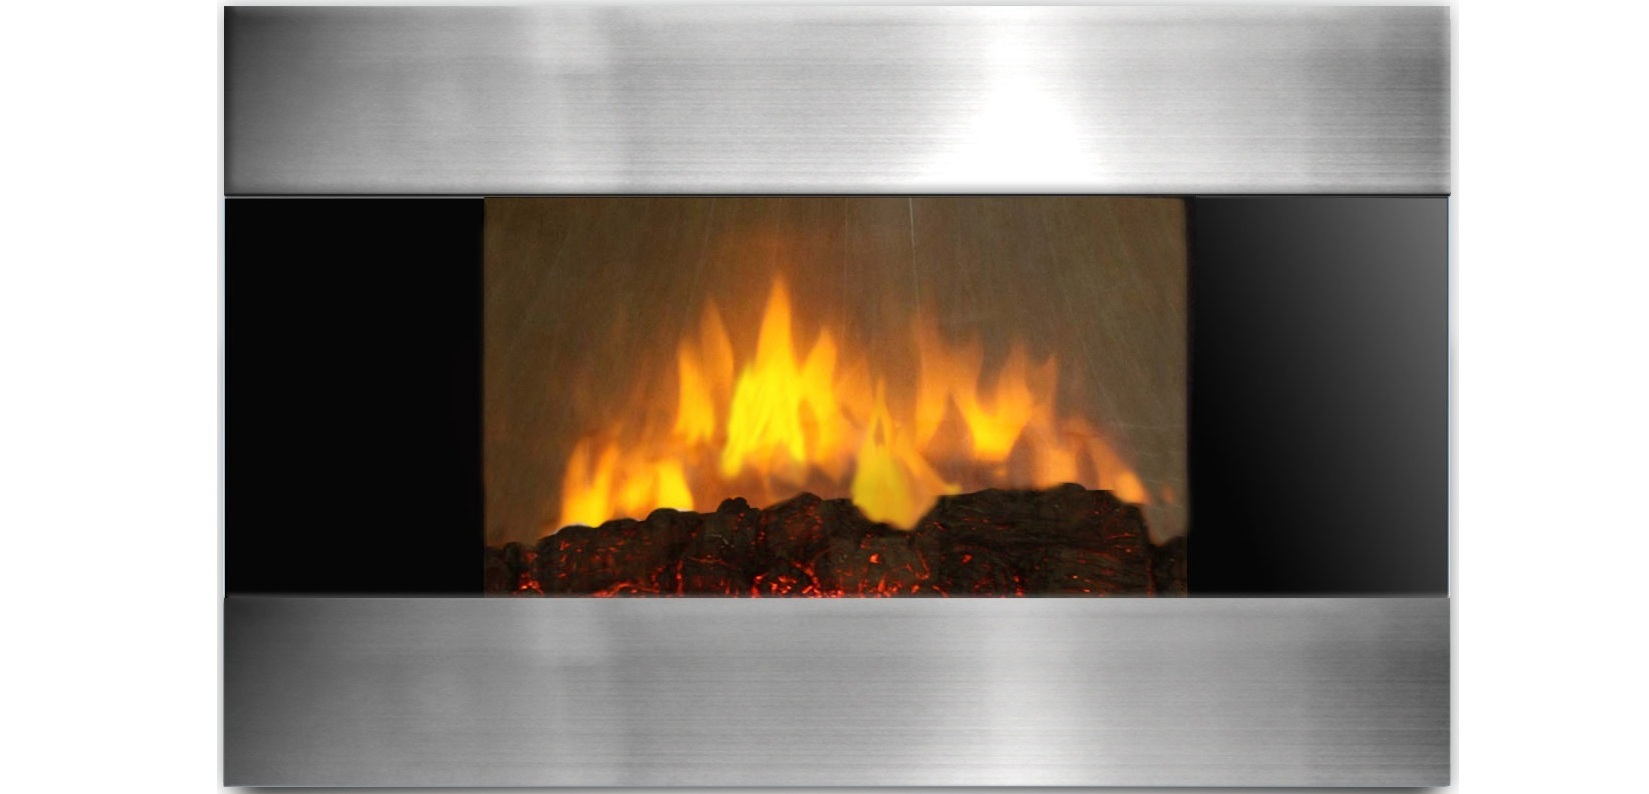 AmbionAir Flame 36 Electric Wall Mount Fireplace EF 1510 SL